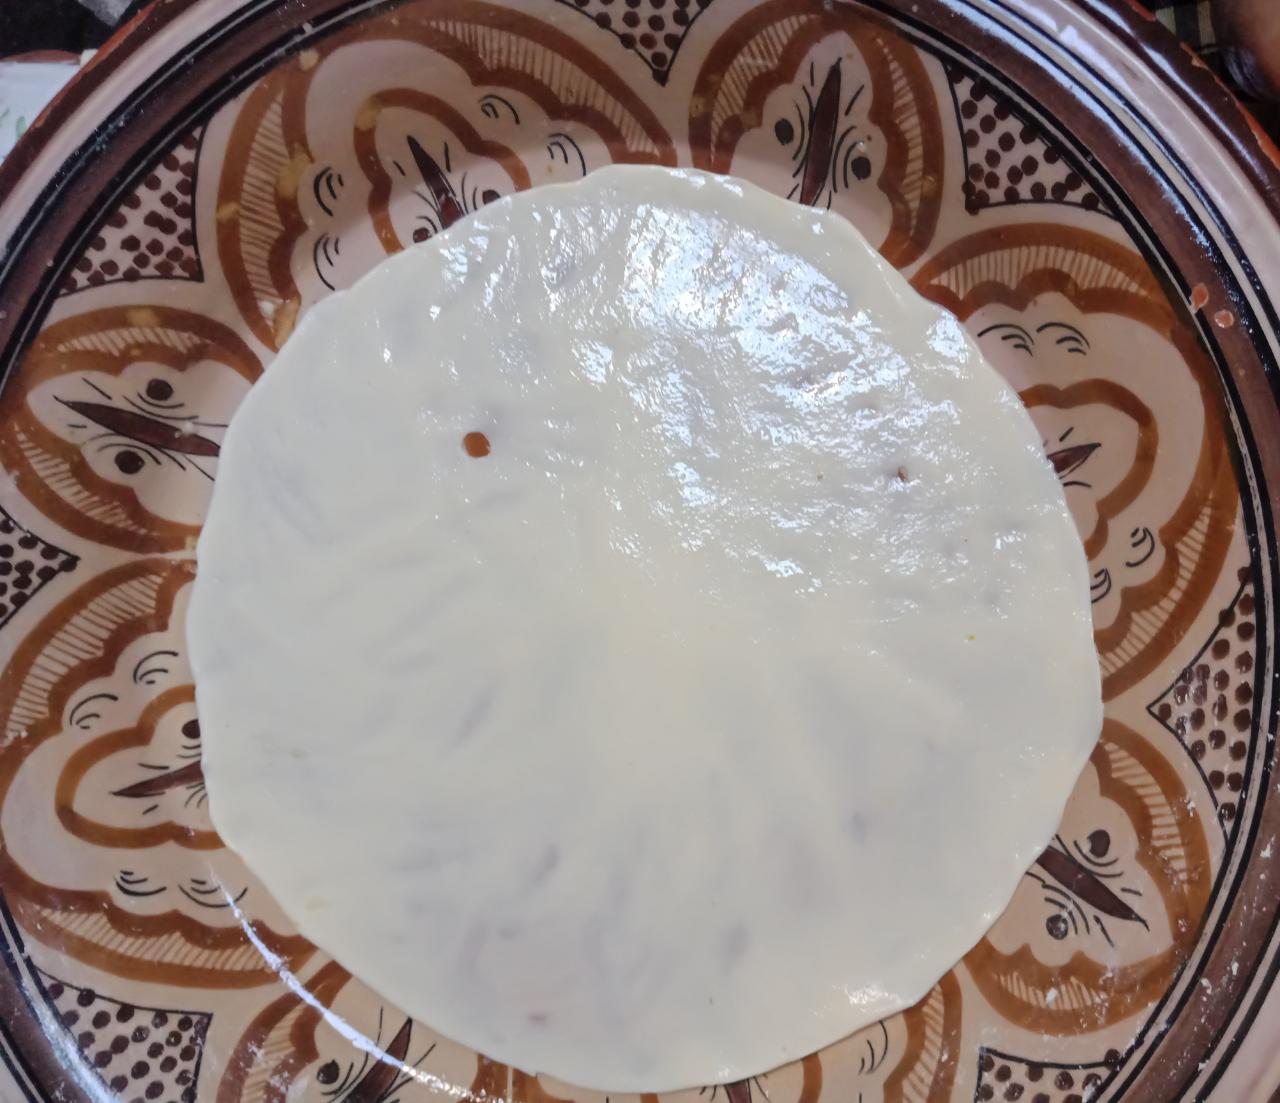 Moroccan Stuffed Msemen: A Tasty Treat for Savory Snack Lovers